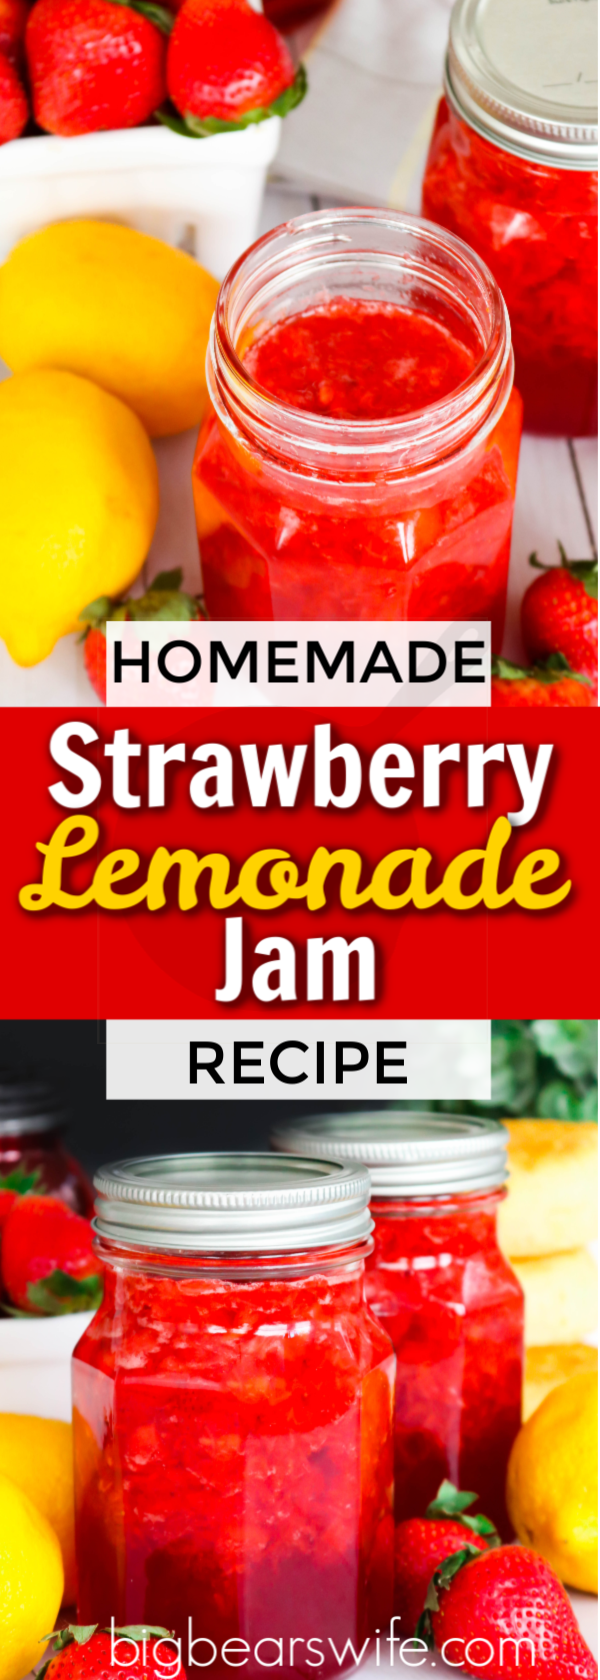 Strawberries and summer lemonade stands come together to create this delicious Strawberry Lemonade Jam. Tastes yummy on biscuits, in a peanut butter and jelly sandwich, or on toast.  Plus, there is no fancy canning equipment involved! Refrigerate for up to 3 weeks or freeze up to 1 year.